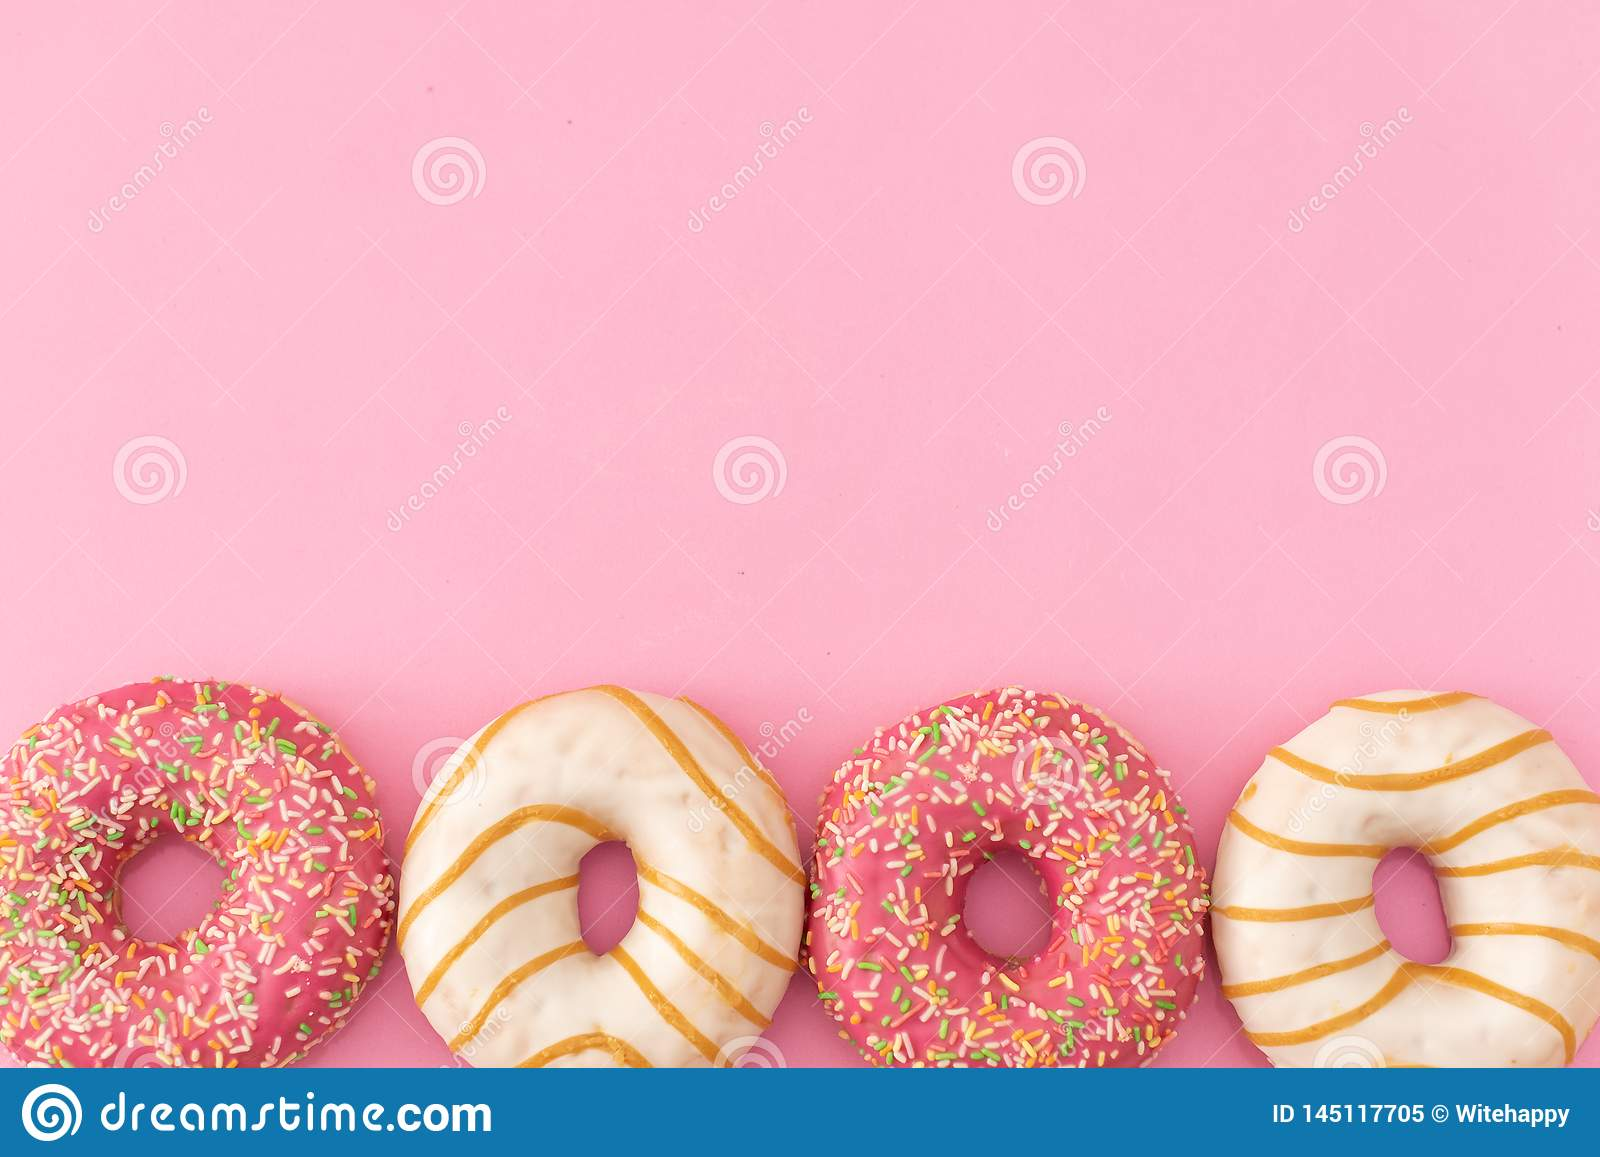 Donuts with icing on pastel pink background. Sweet donuts